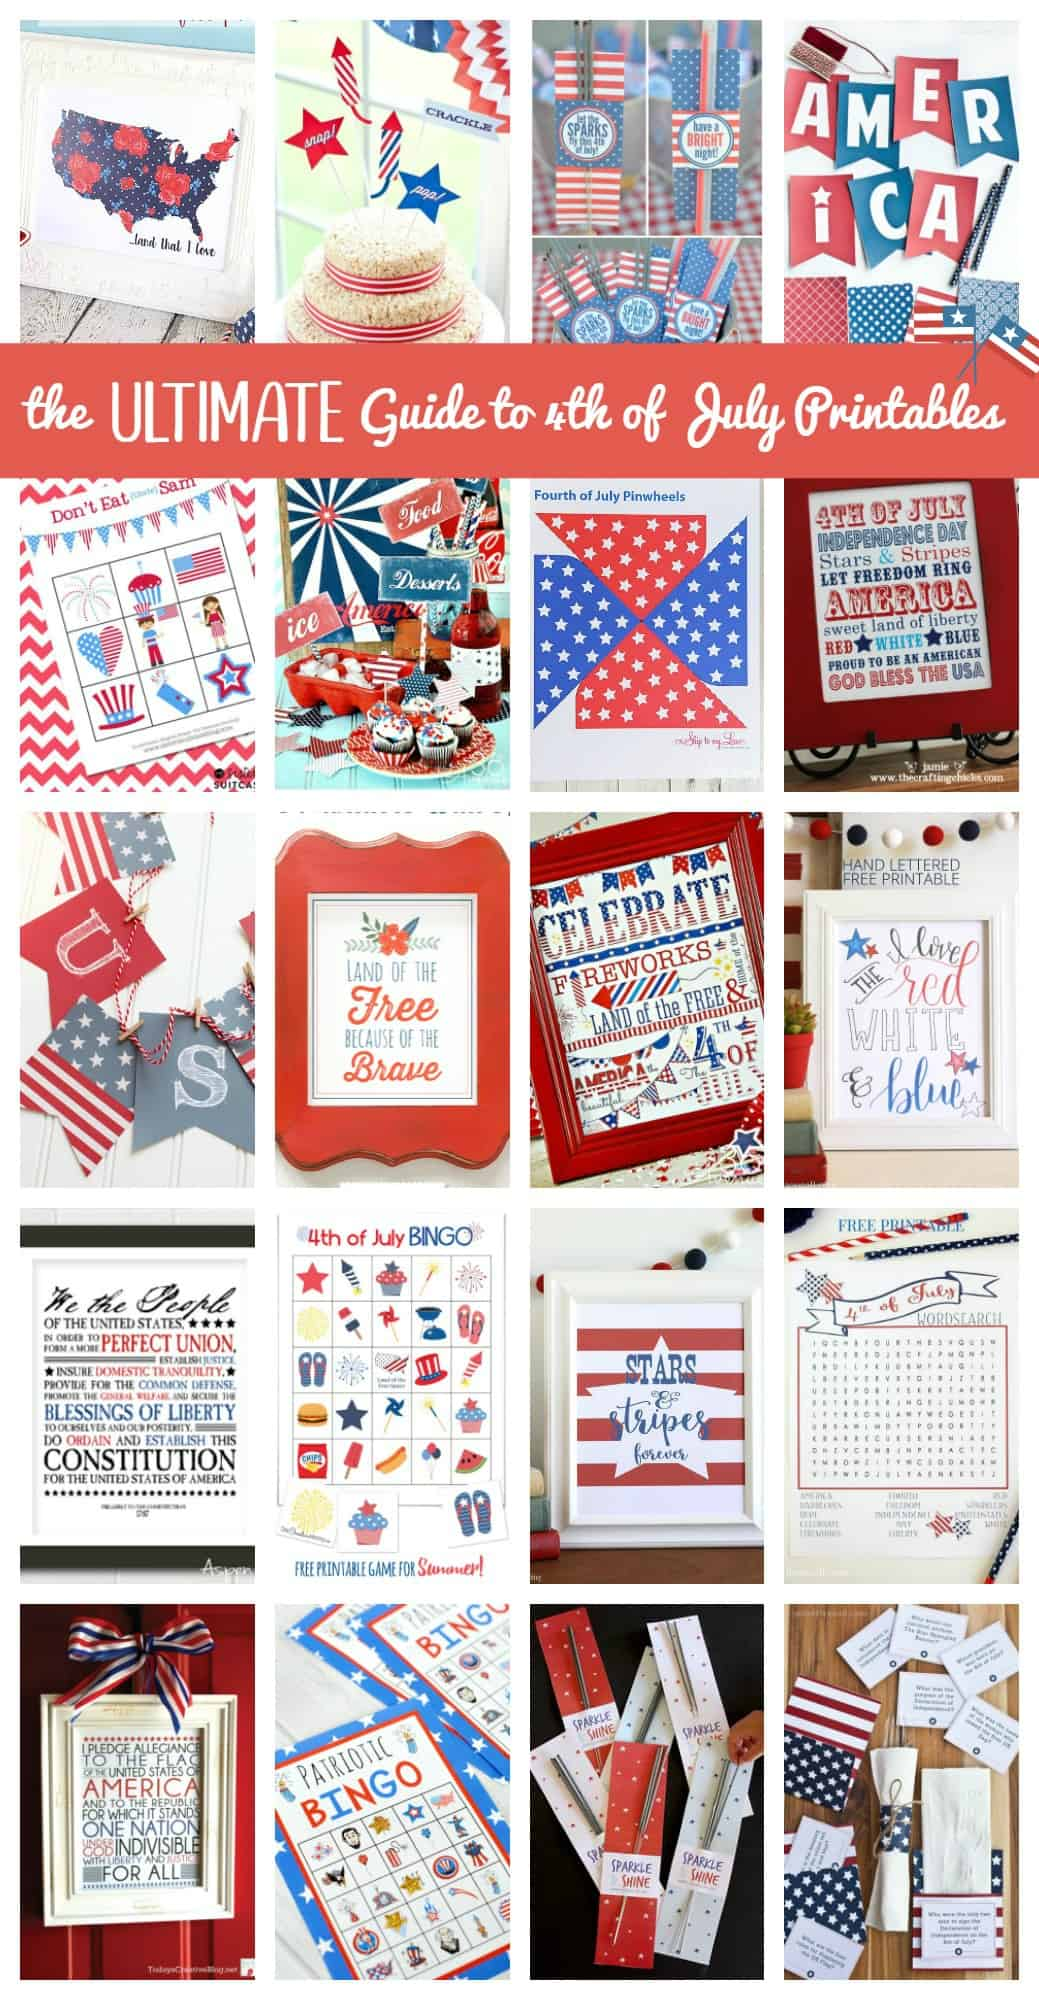 The ULTIMATE Guide to 4th of July Printablles